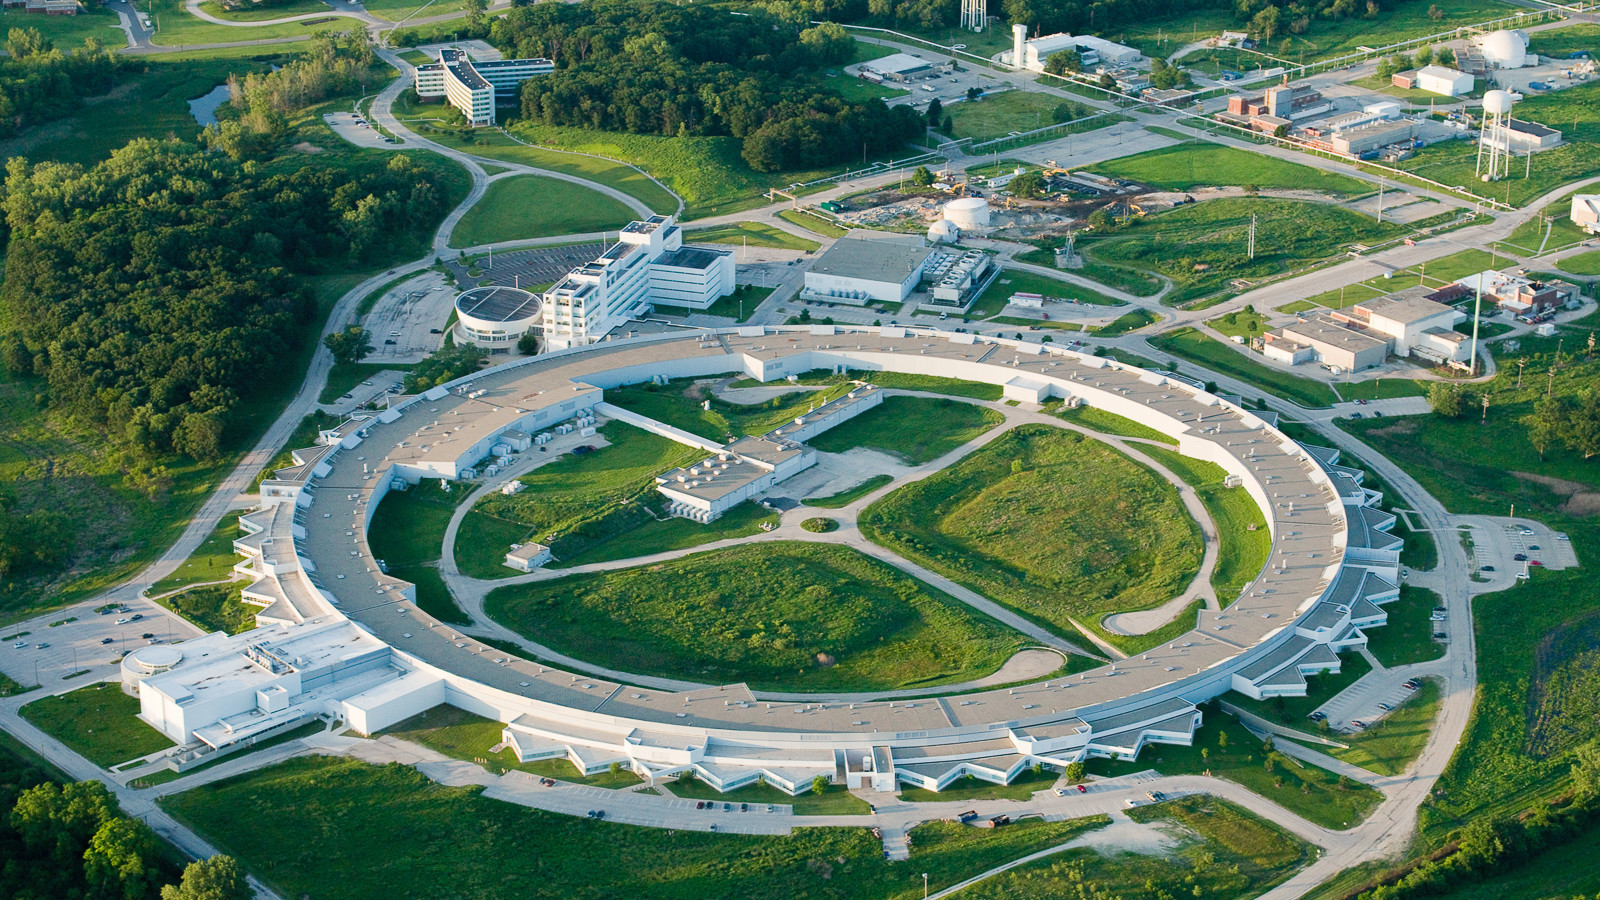 The US Department of Energy's Argonne National Laboratory is using a supercomputer to try to come up with a model to help ease traffic in Los Angeles ©ANI